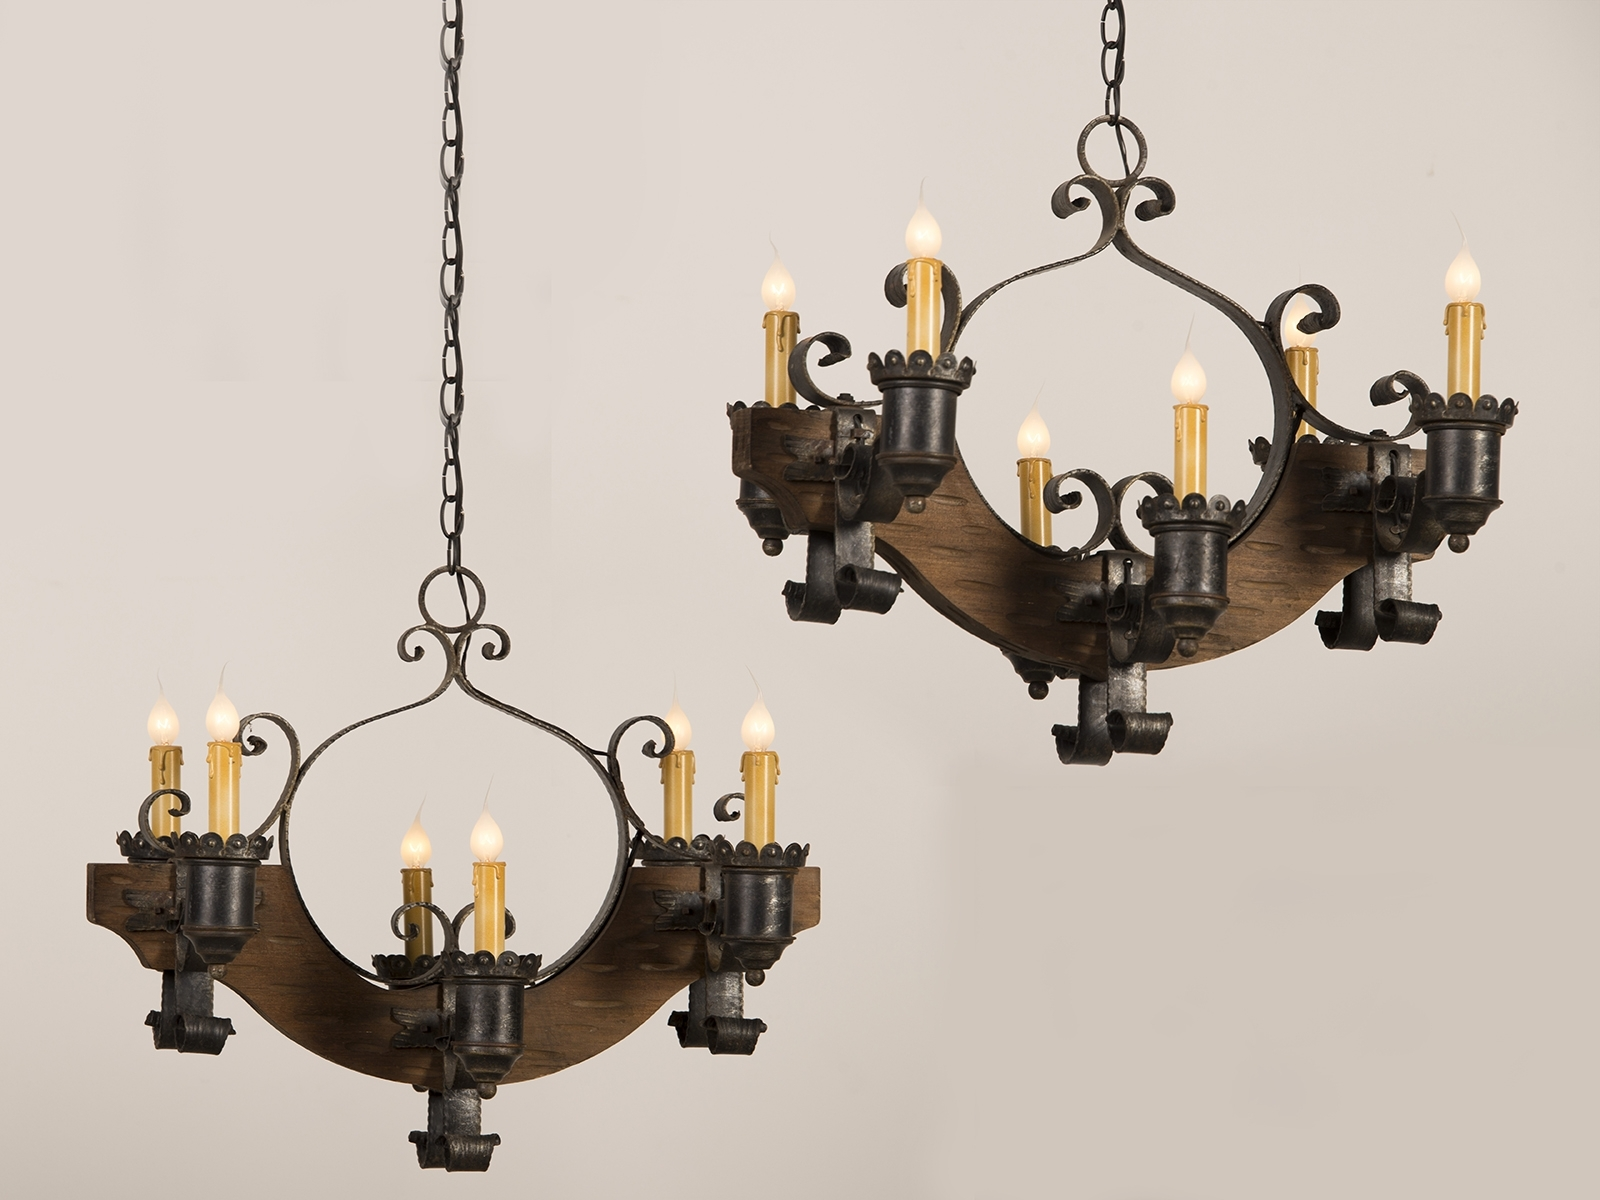 Cast Iron Antique Chandelier Throughout 2018 Antique And Vintage Pair Old Wood Chandeliers With Black Cast Iron (View 6 of 15)